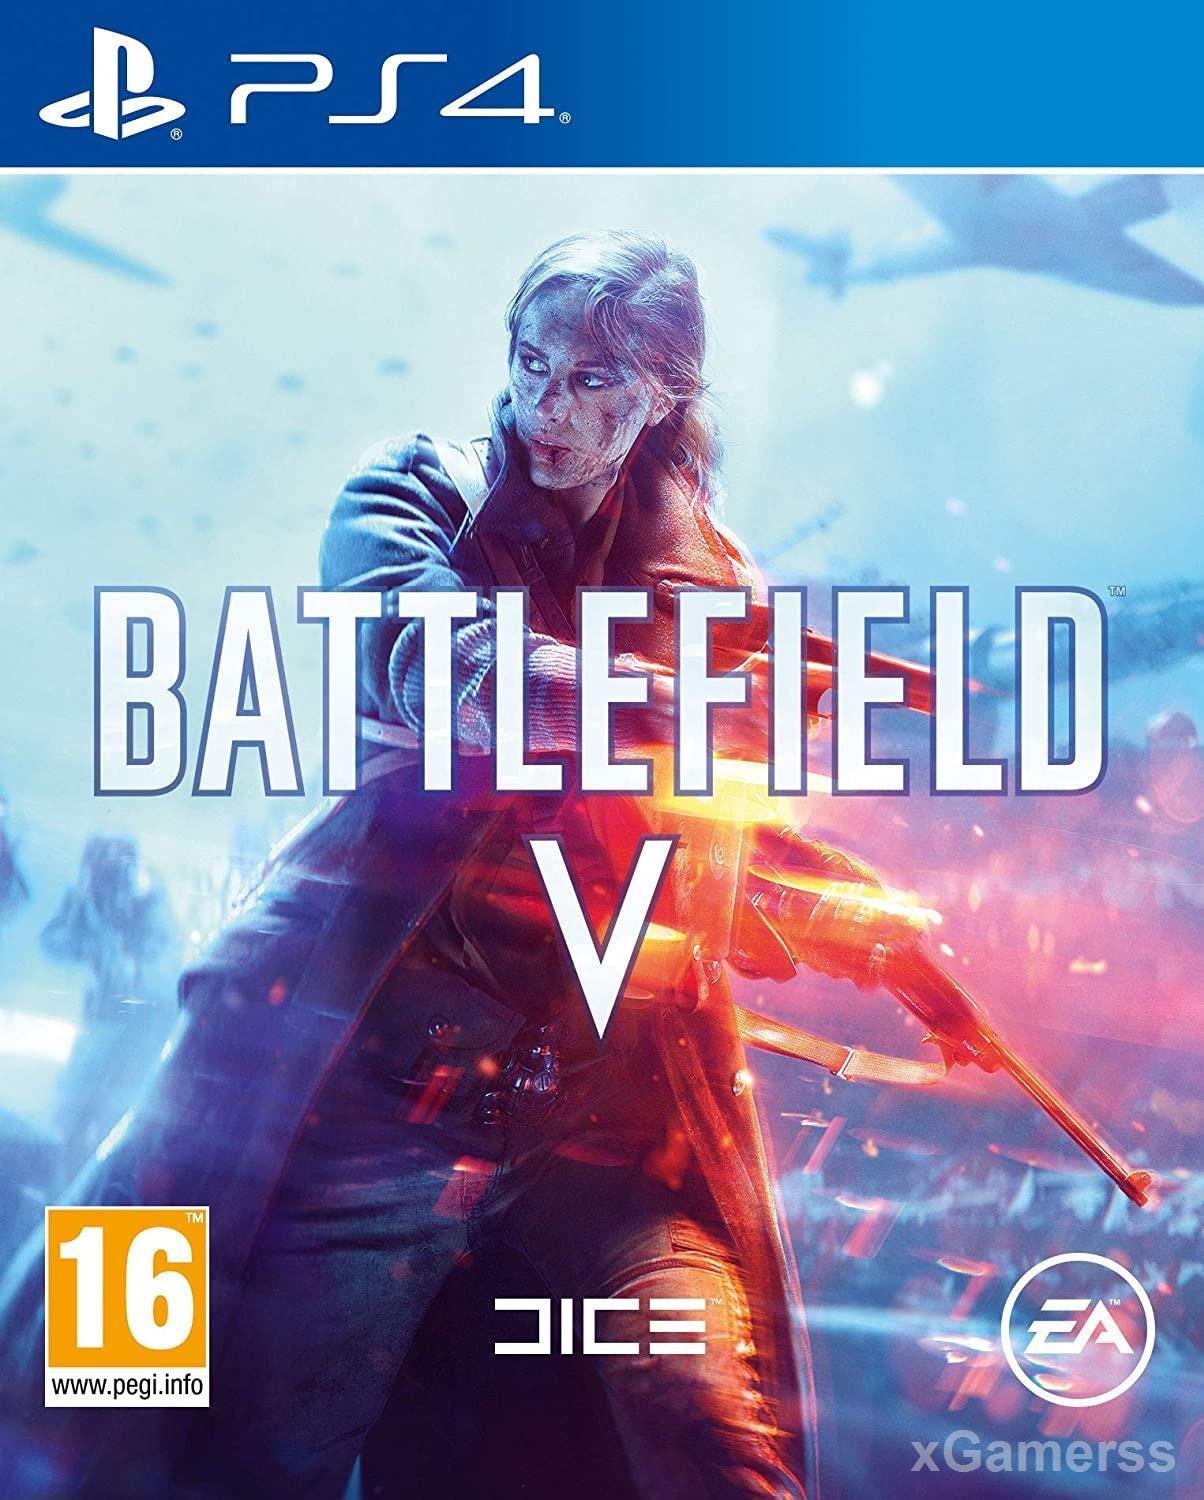 Battlefield V - It has player stories based on the First and Second World Wars